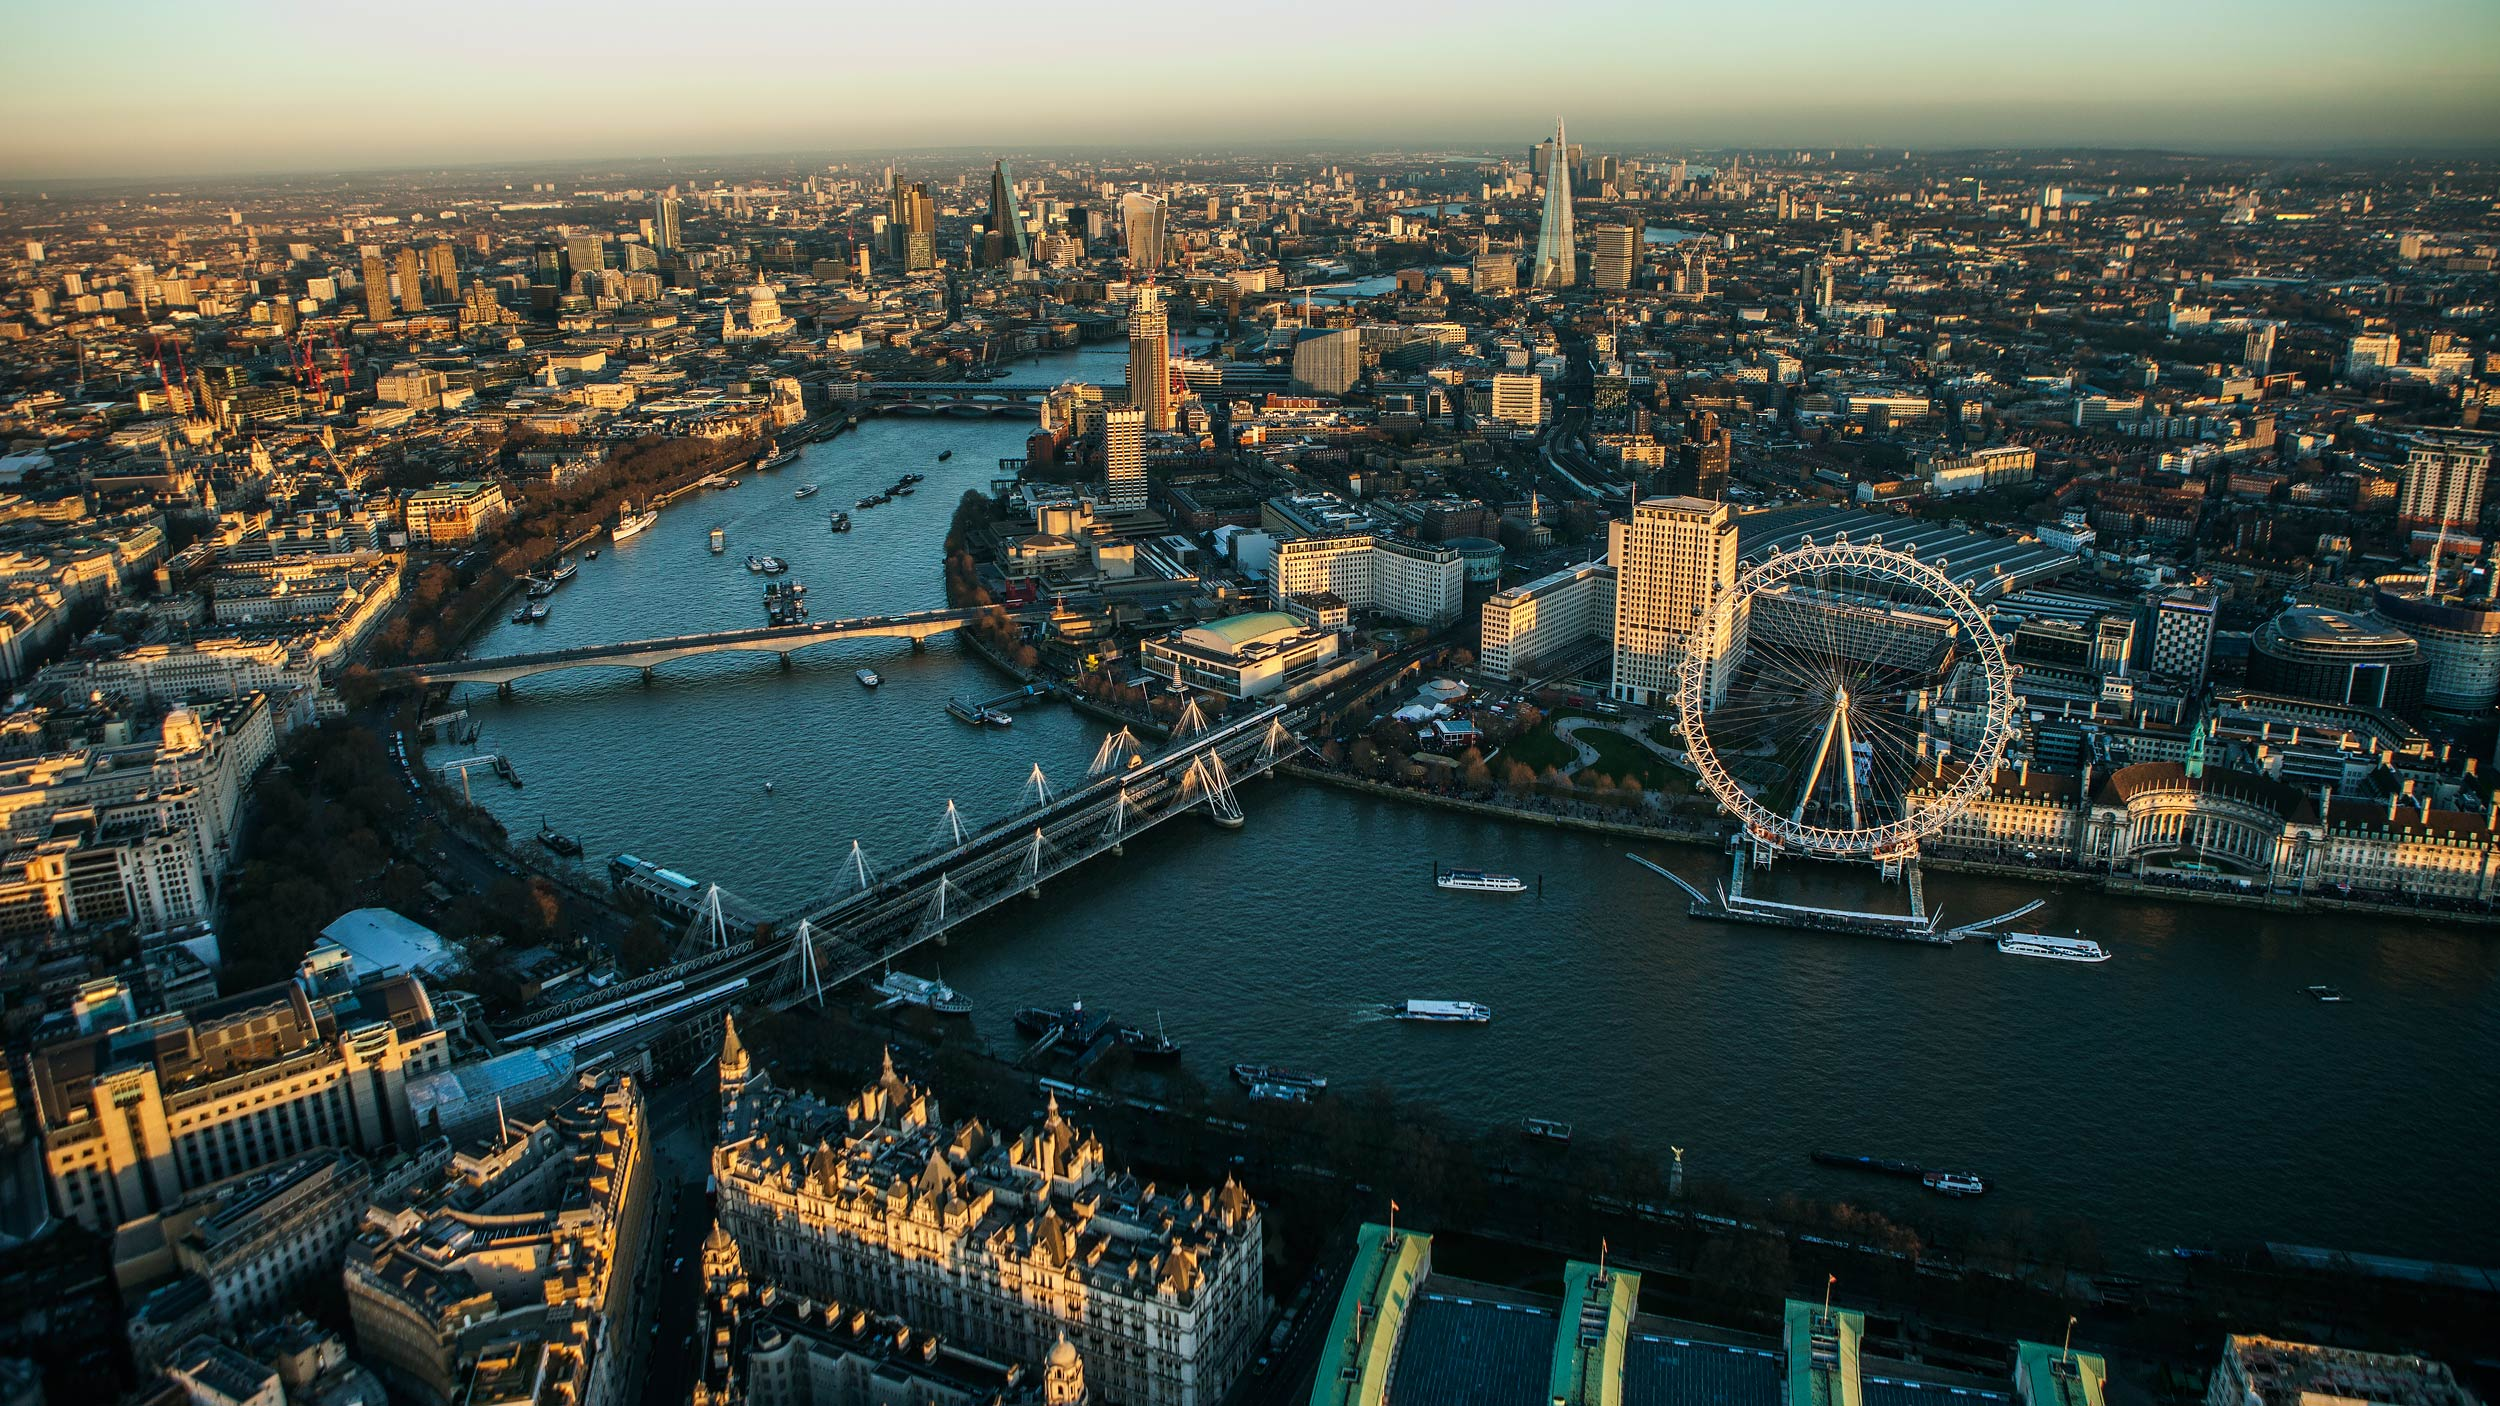 Citywide, Free-to-Use IoT Network Launched in London